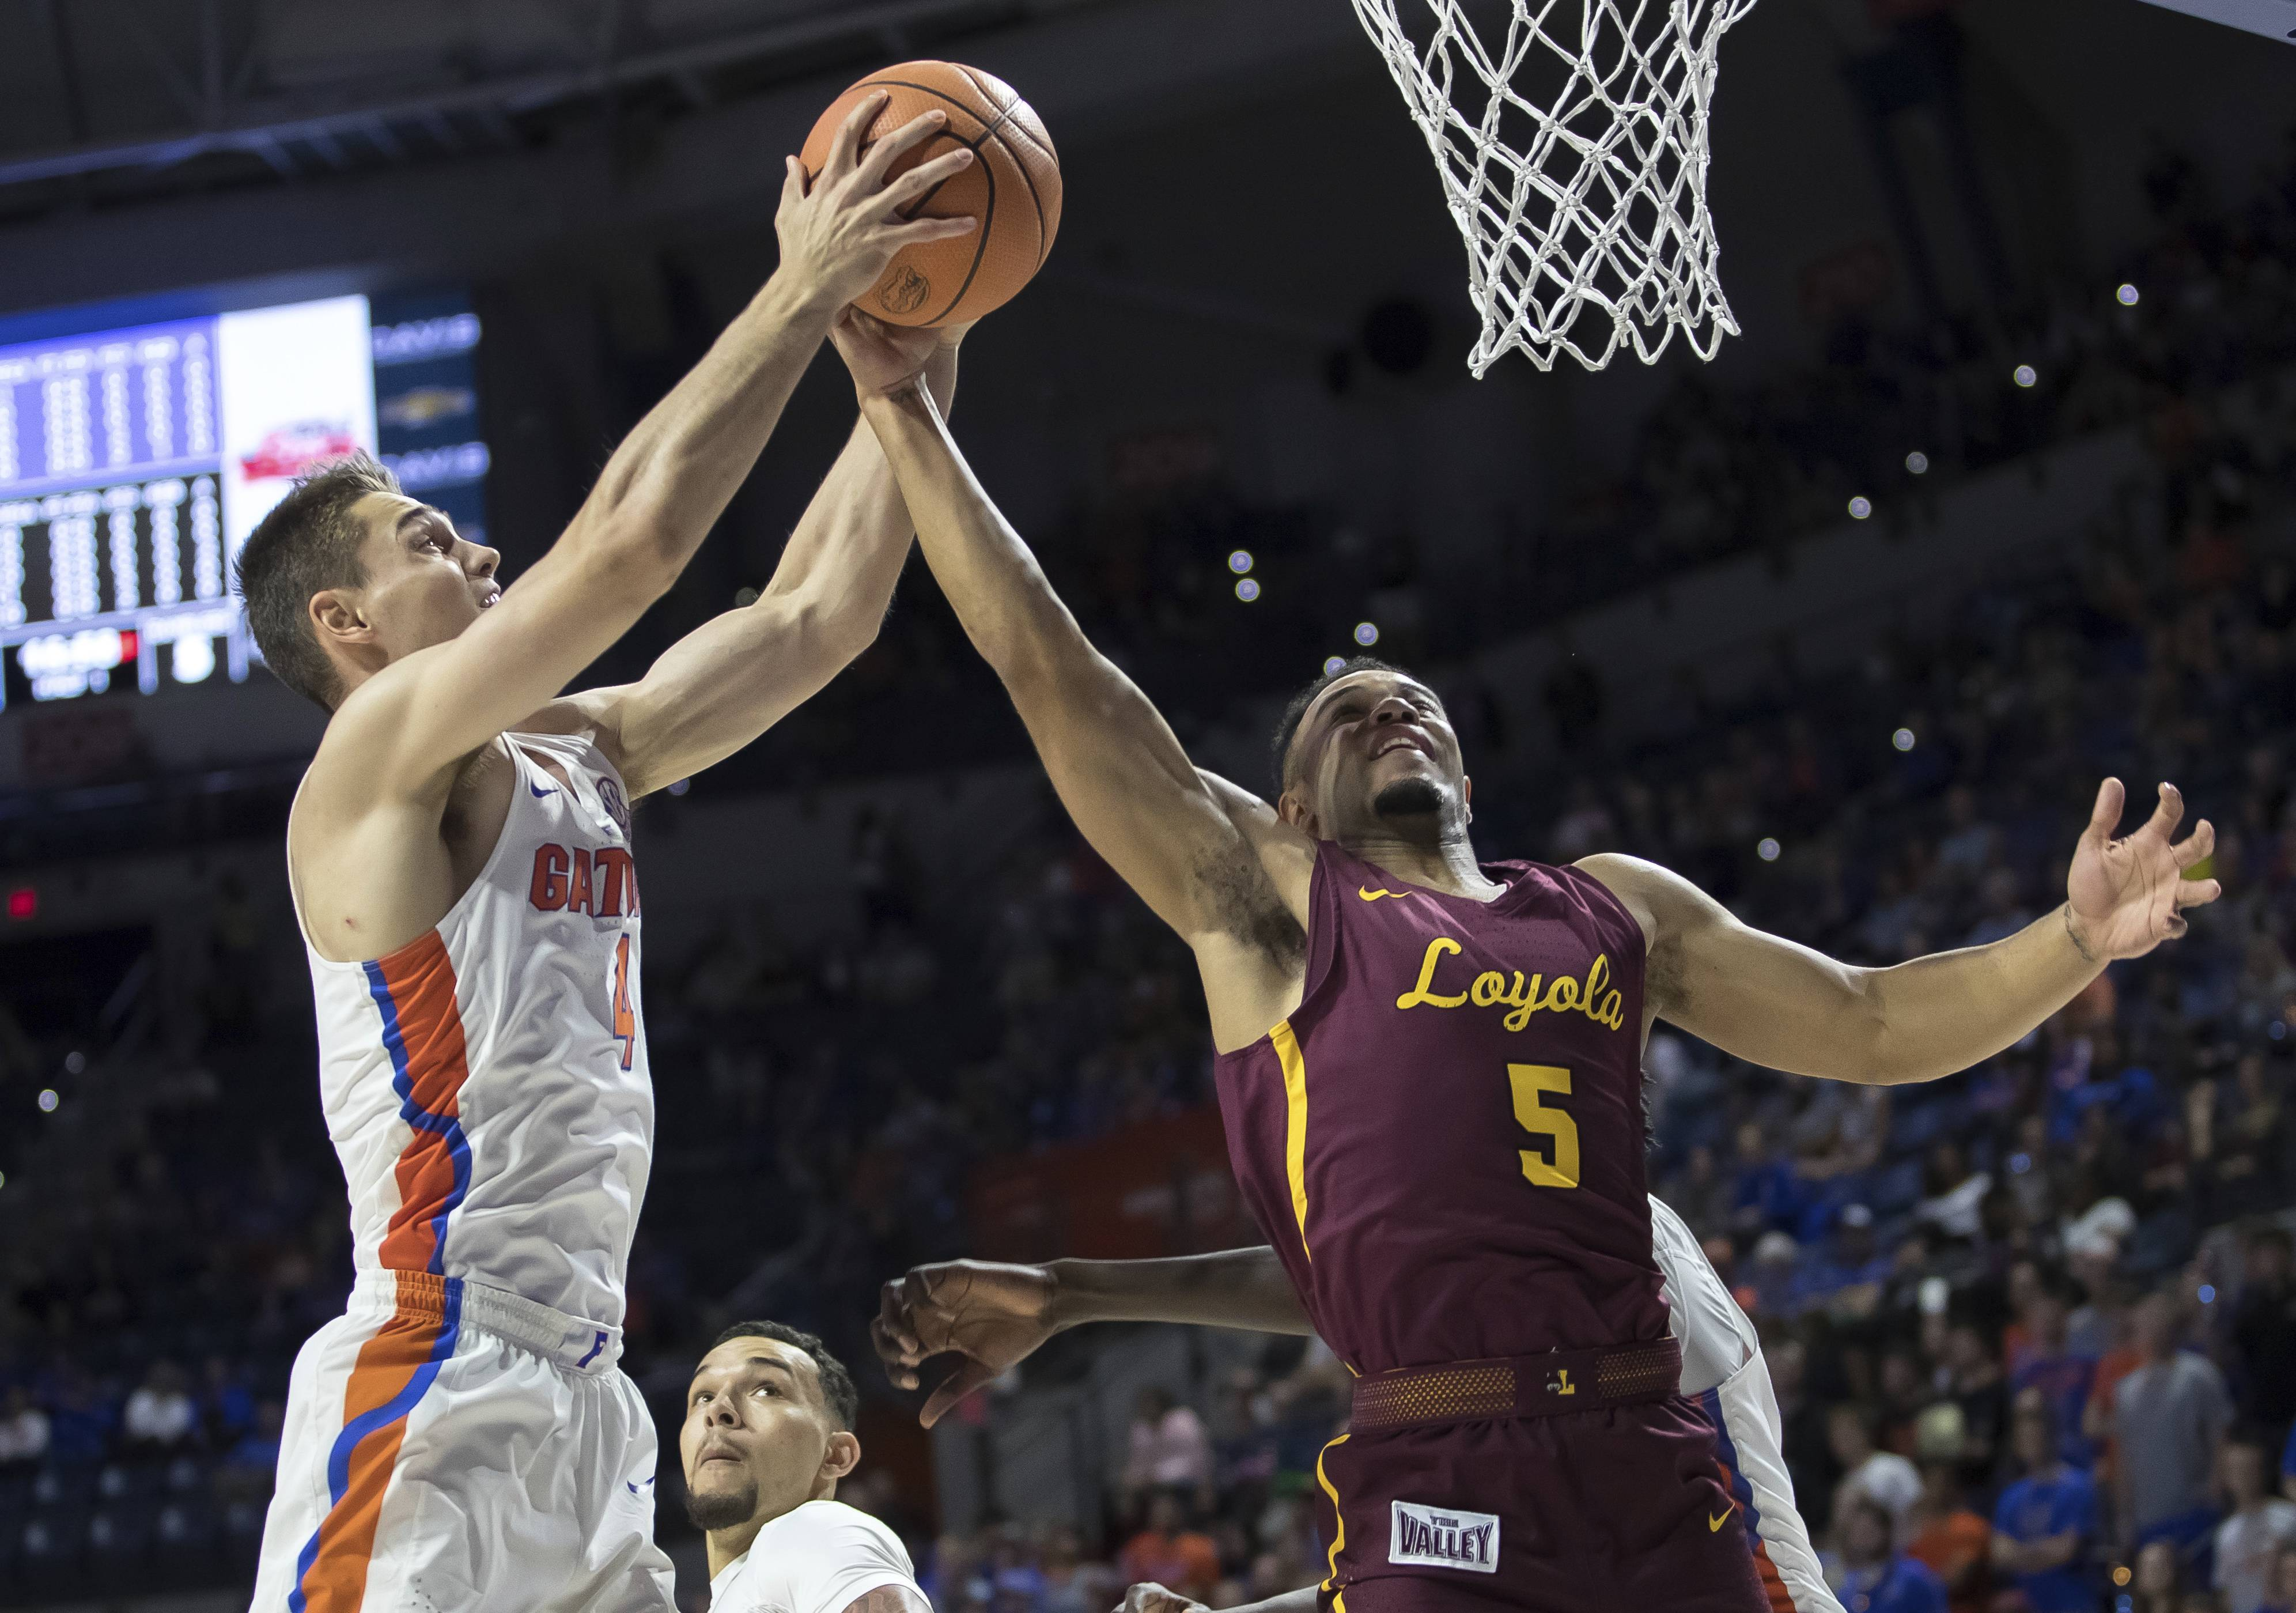 Florida guard Egor Koulechov (4) and Loyola of Chicago guard Marques Townes (5) battle for a rebound during the first half of an NCAA college basketball game in Gainesville, Fla., Wednesday, Dec. 6, 2017.